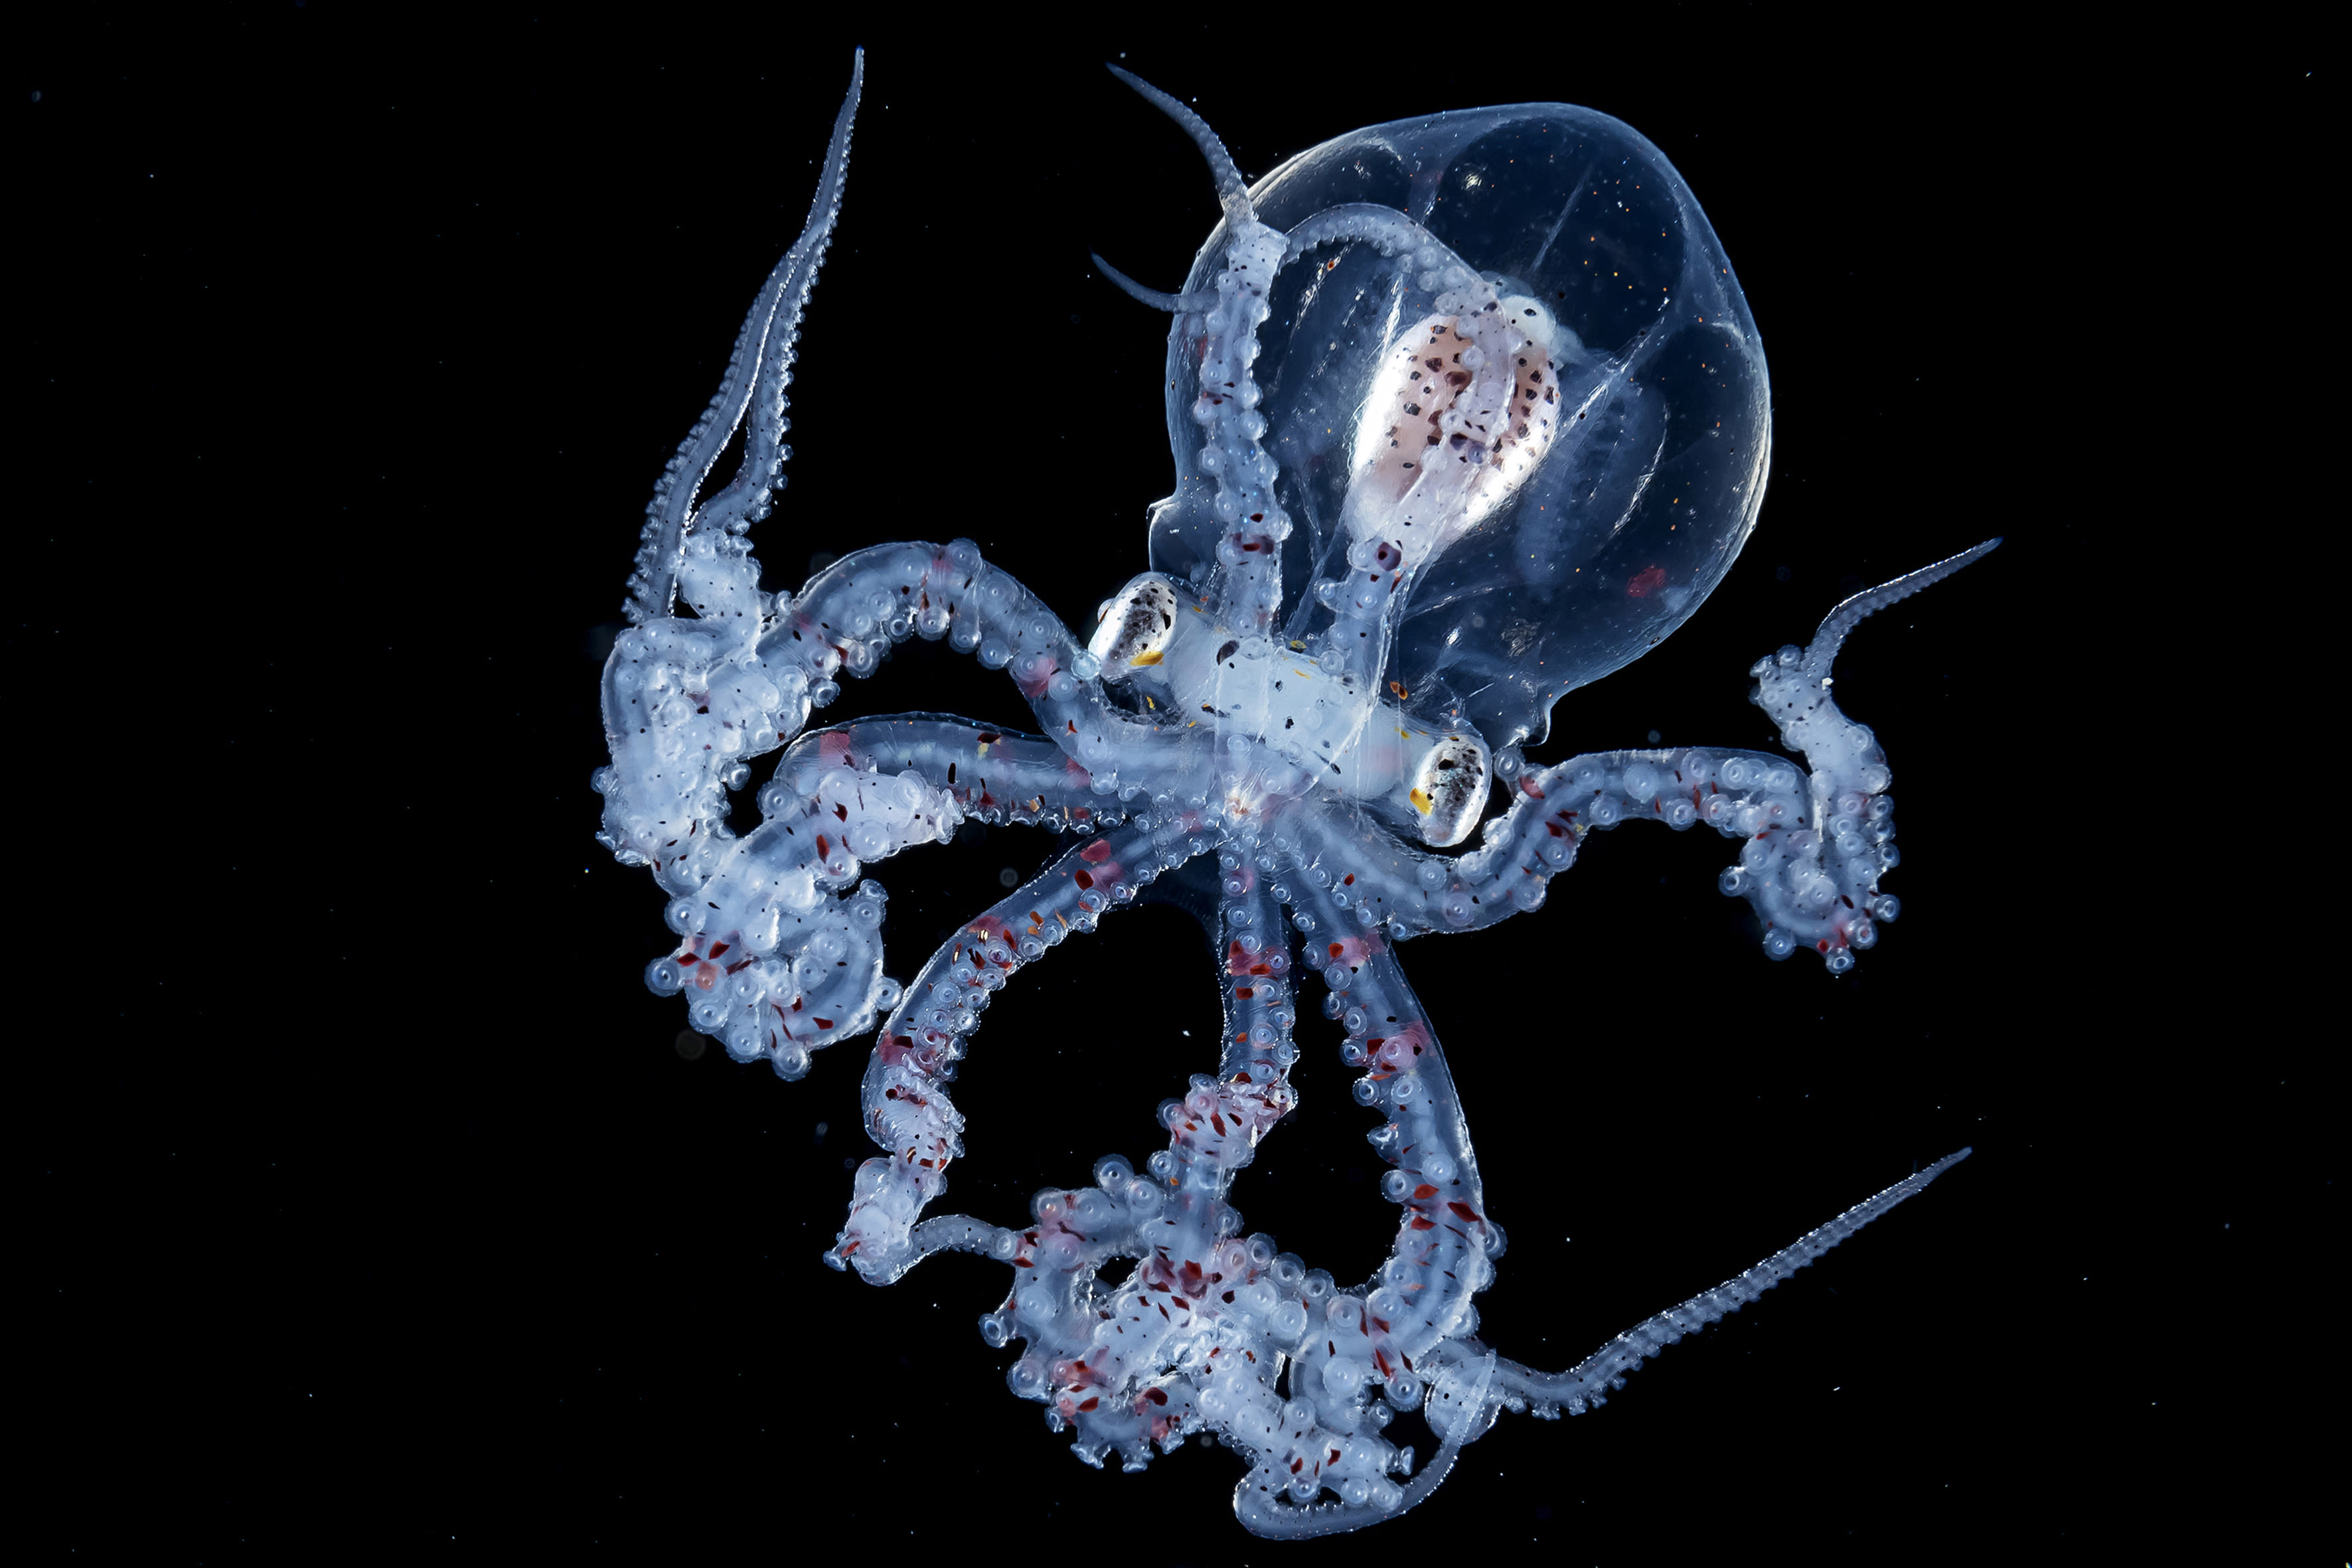 <p>Wunderpus larva. (Photo: Ace Wu/Caters News) </p>